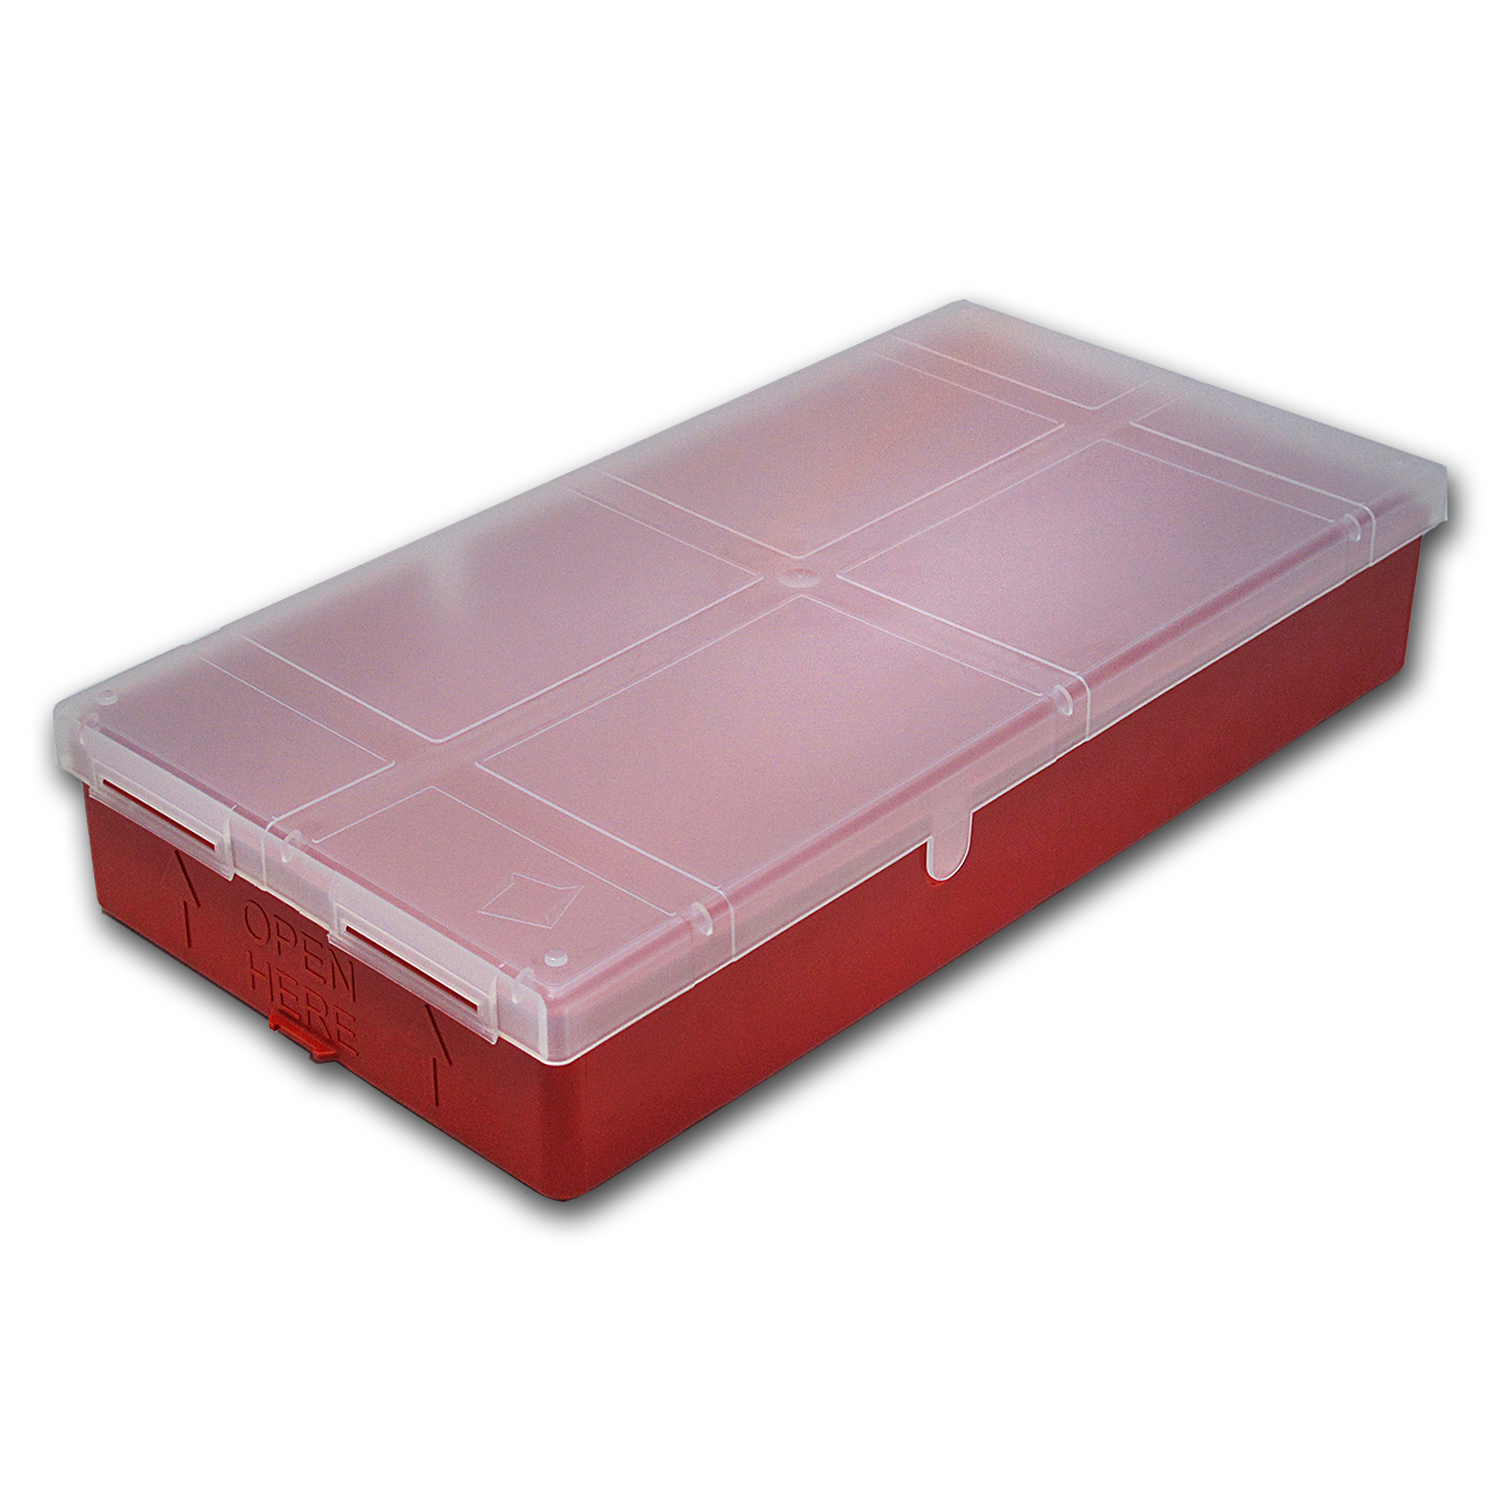 100-Count Valcambi Suisse Storage Box for 1 oz Bars (Used)